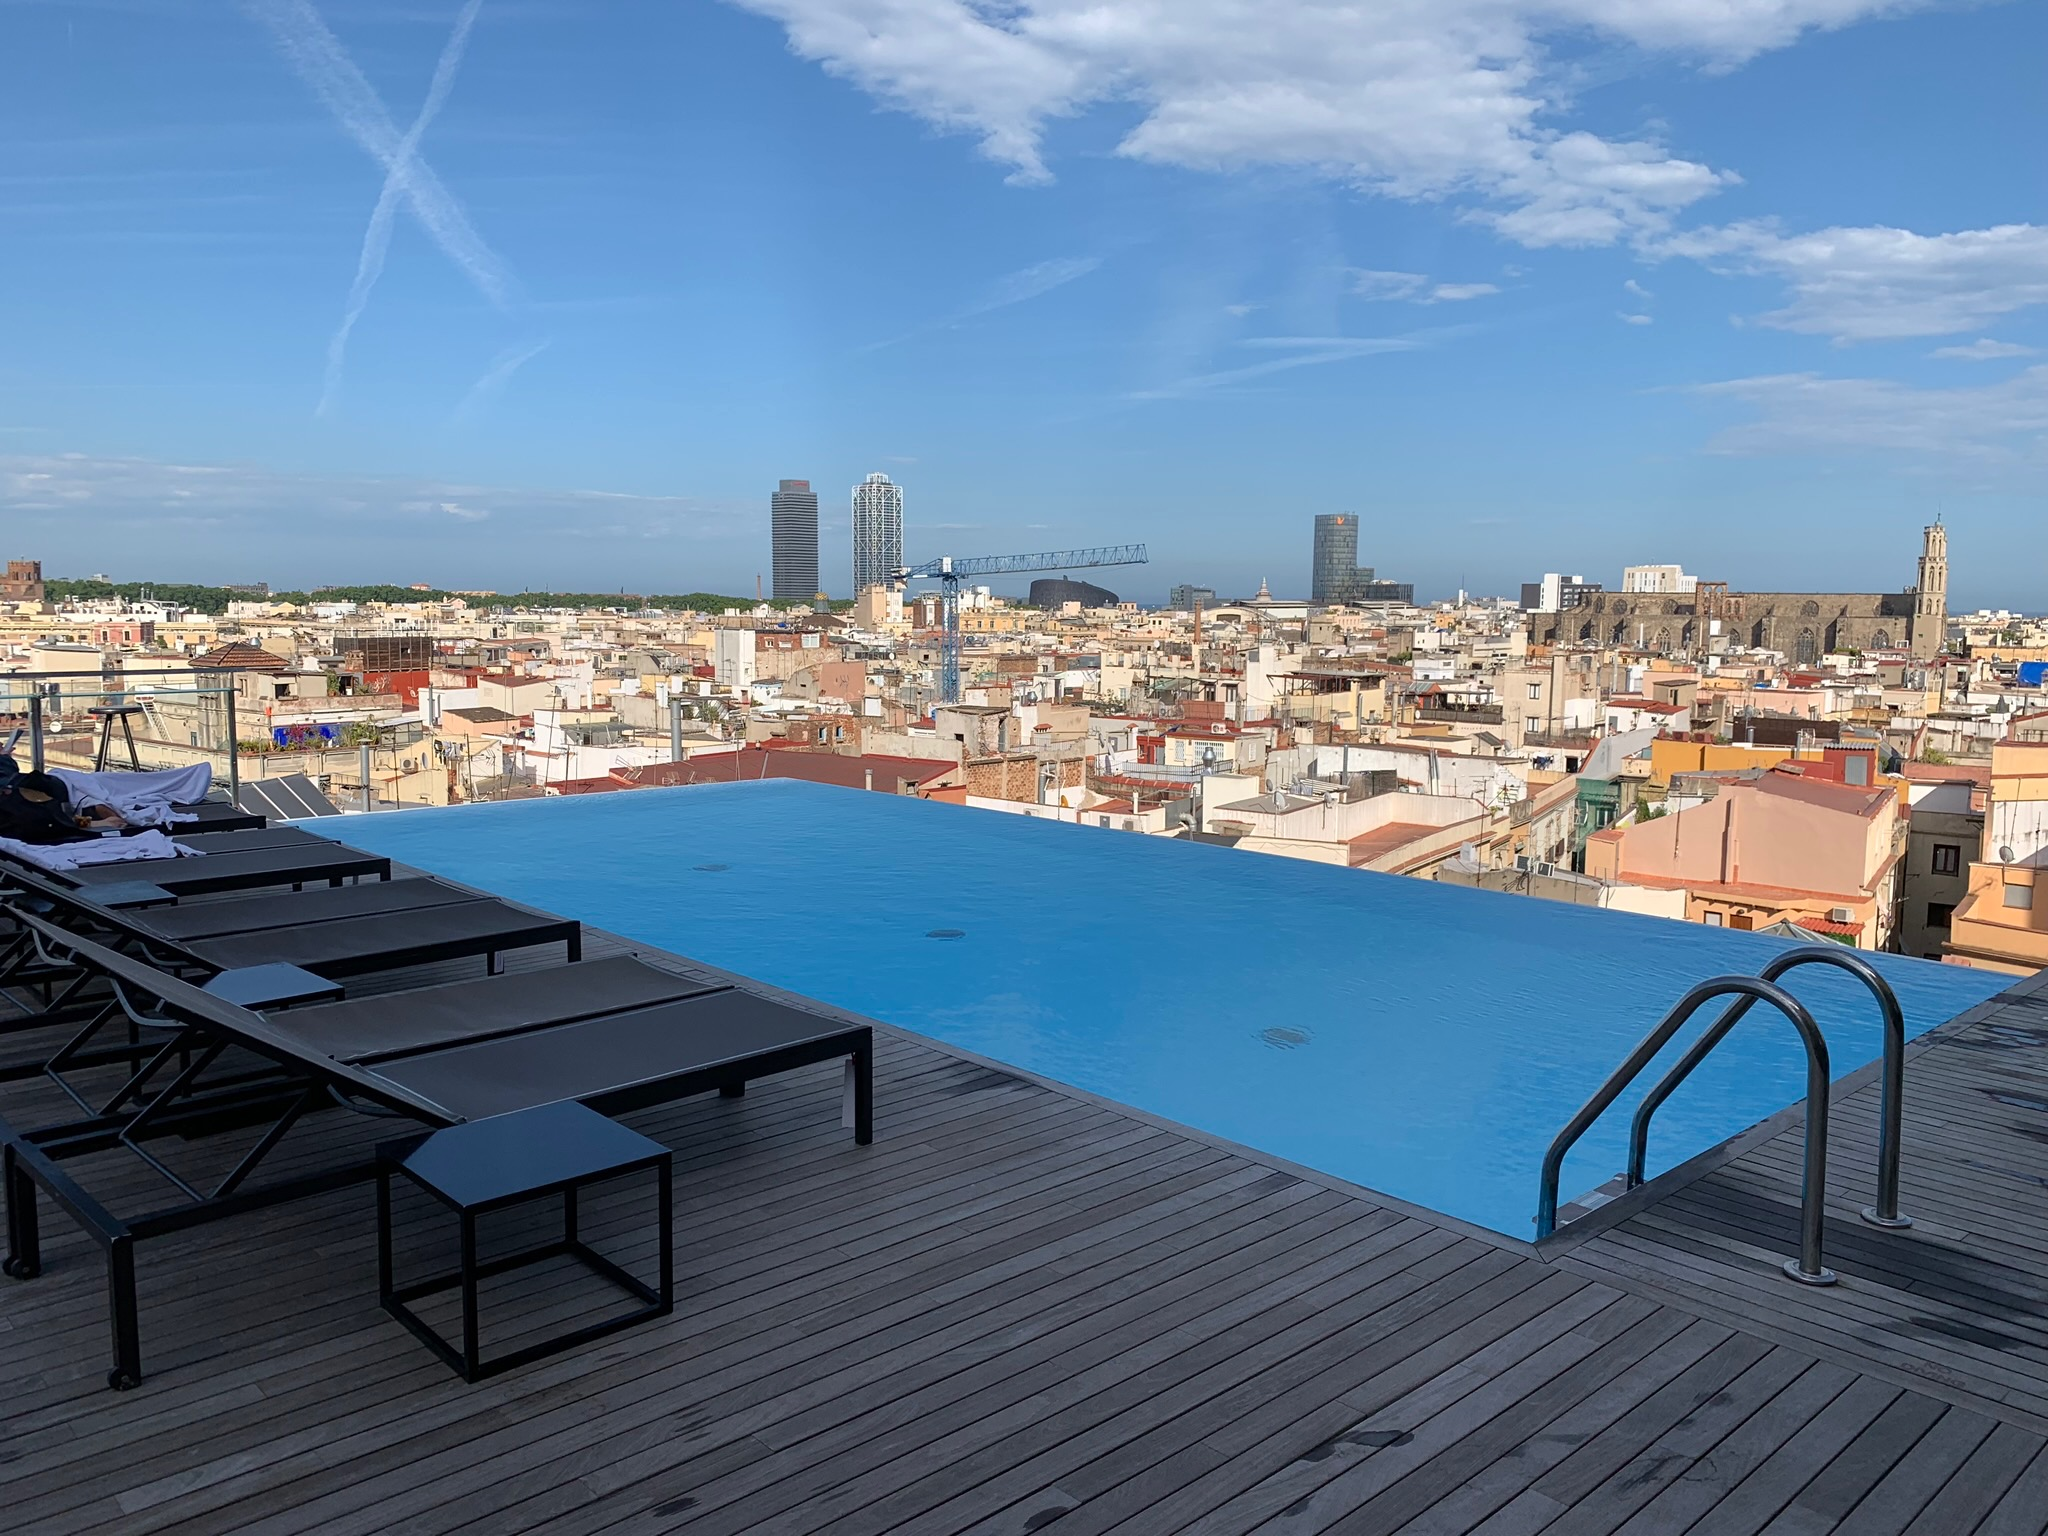 Grand Hotel Central Barcelona Starting In Barcelona - Hola! Two Weeks In Spain